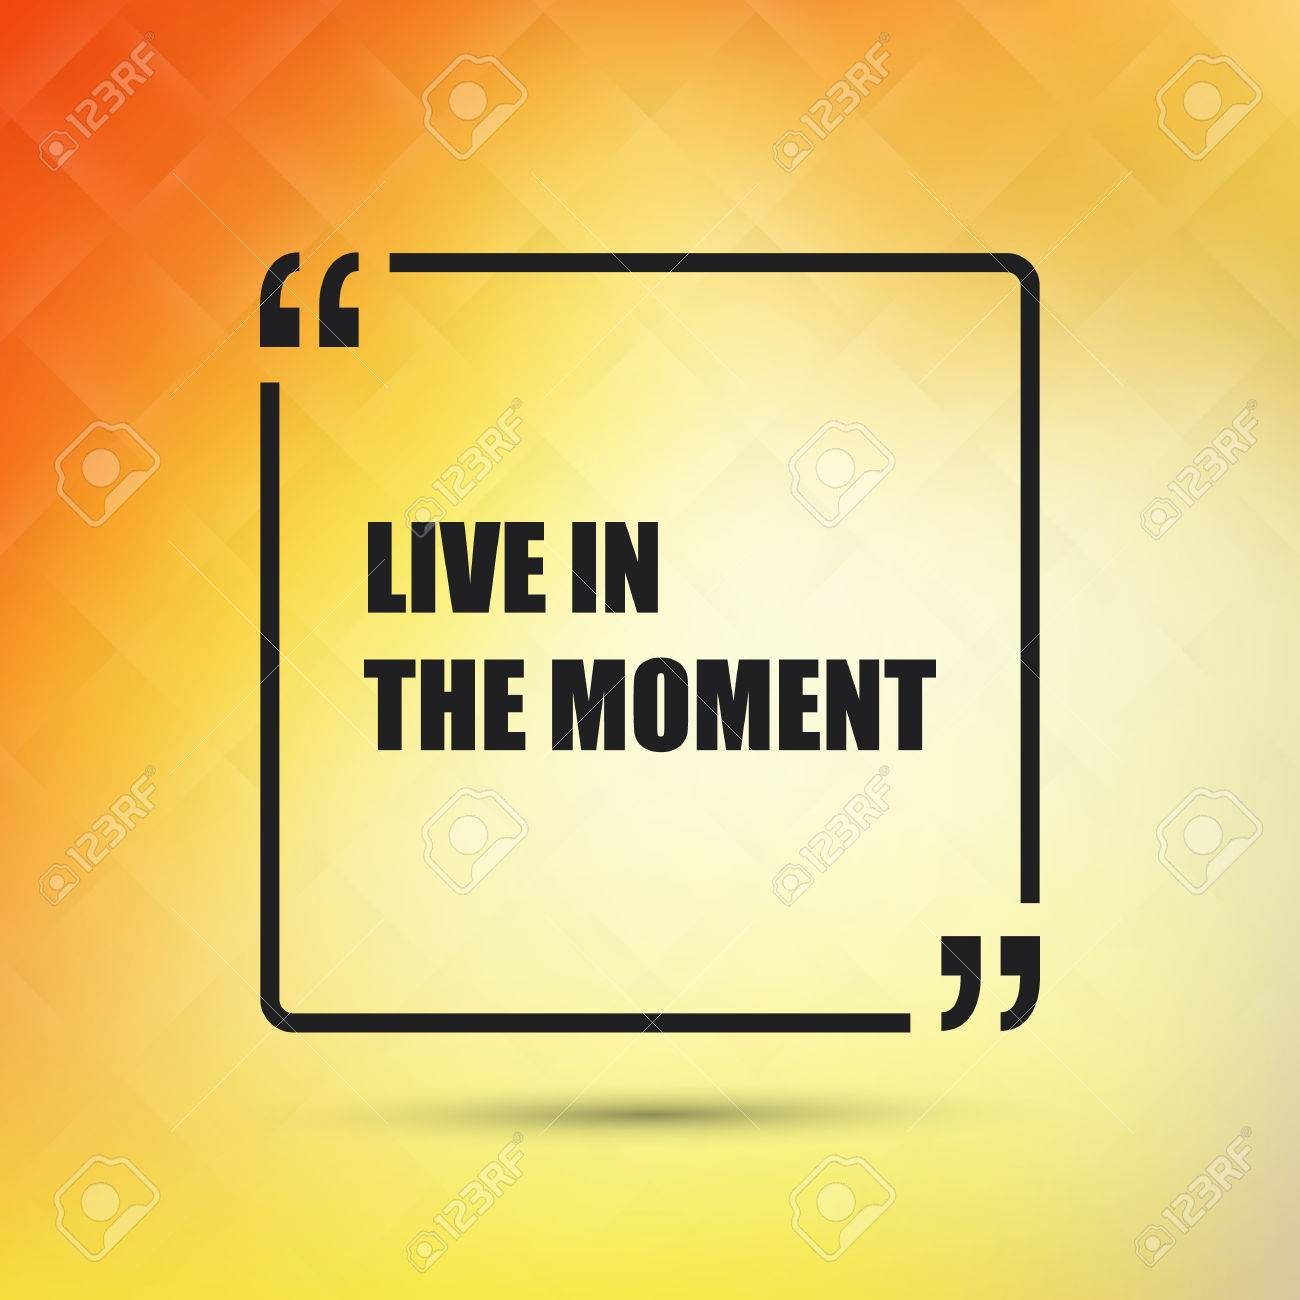 Live In The Moment Quotes Live In The Moment  Inspirational Quote Slogan Saying On An